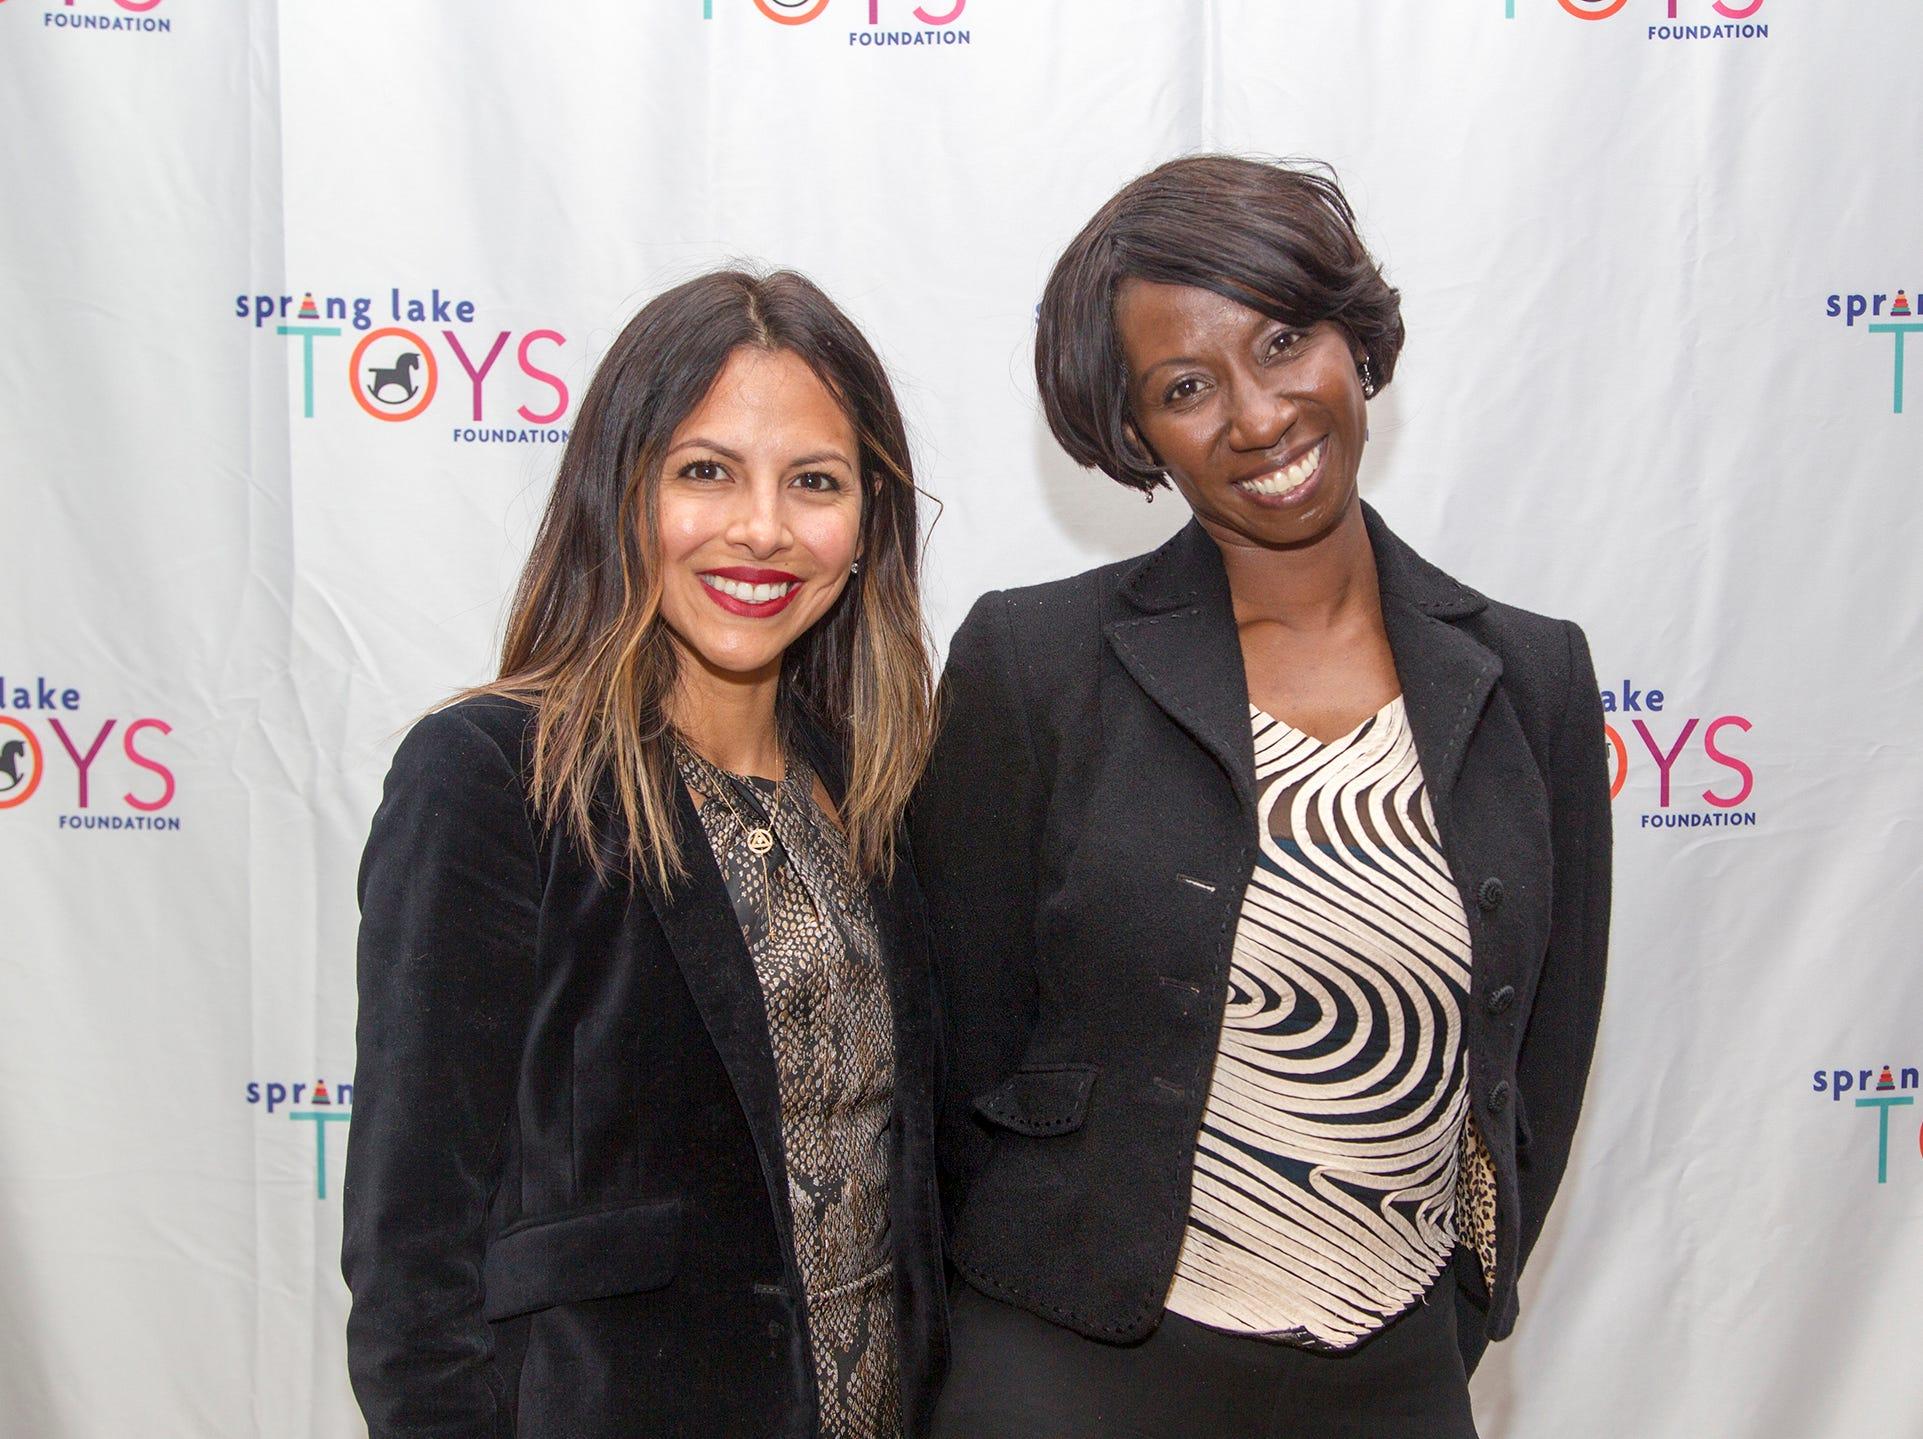 Mariel Alvarado, Kendera Jones. Spring Lake Toys Foundation held its 3rd annual fundraising gala luncheon at Indian Trail Club in Franklin Lakes. The luncheon fundraiser raises funds for children with illnesses. 10/18/2018